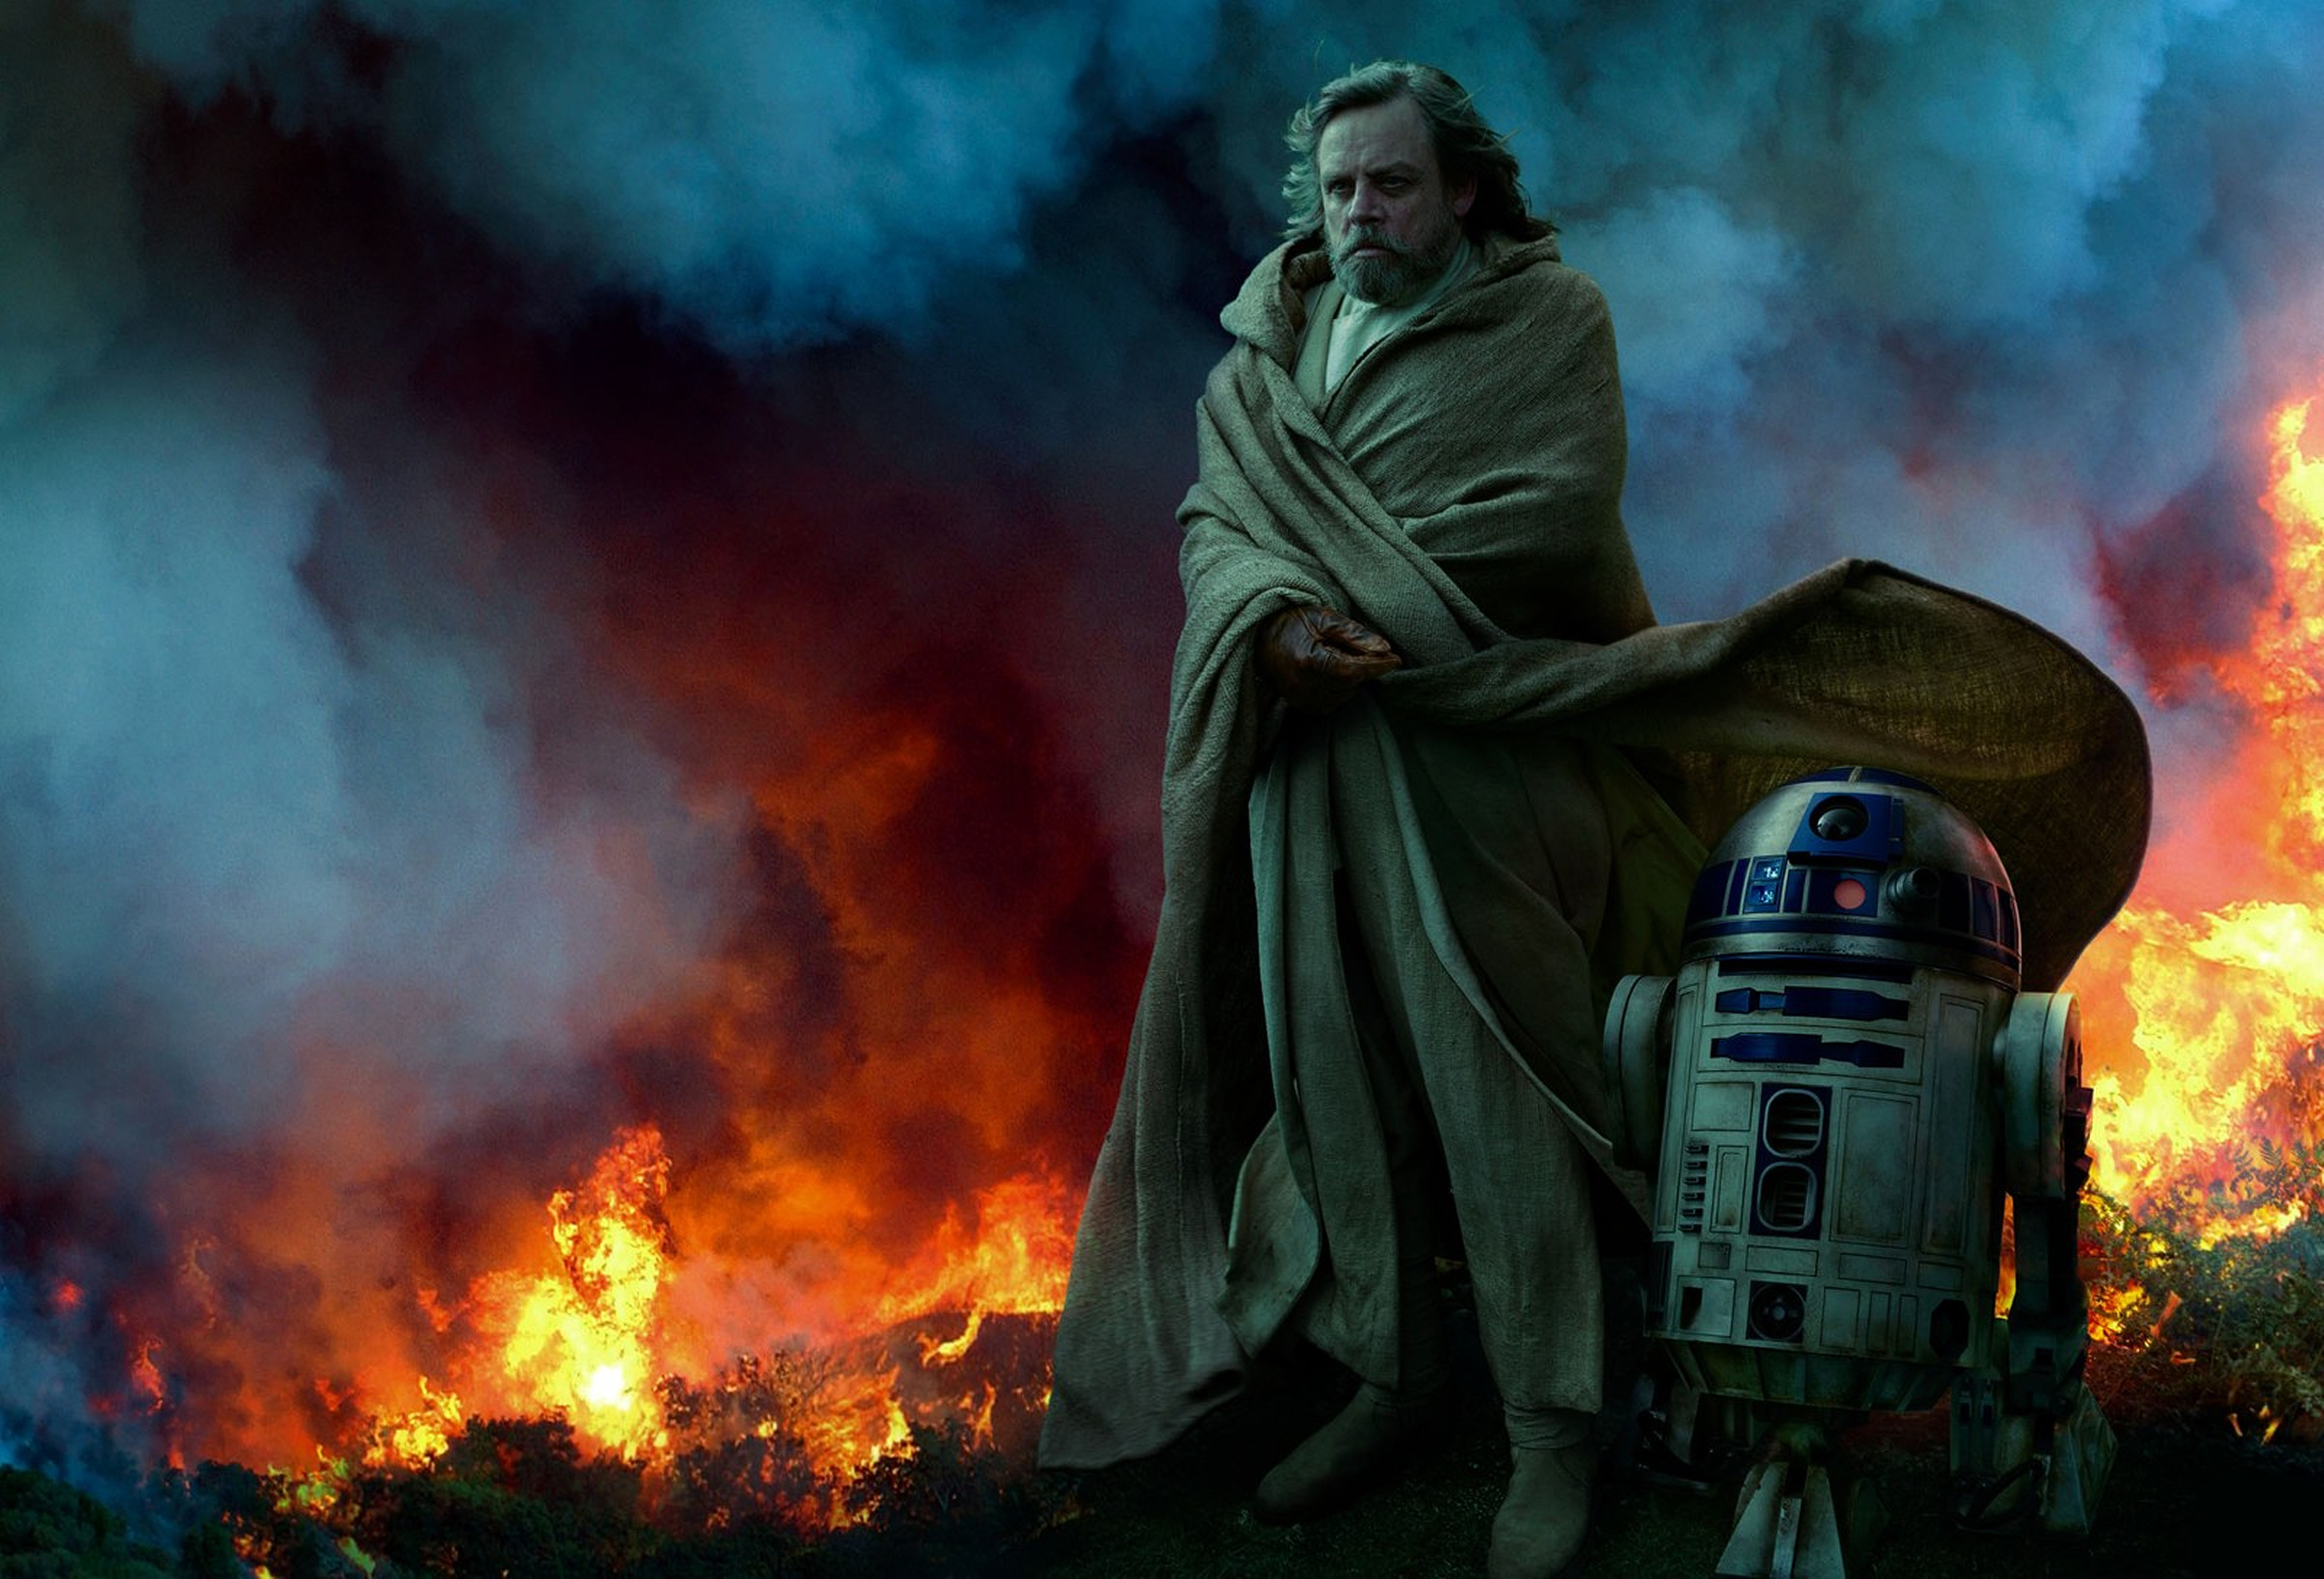 star-wars-the-rise-of-skywalker-vanity-fair-from-the-ashes-luke-and-r2-d2-exclusive-hi-resolution-image-by-annie-leibovitz.jpg